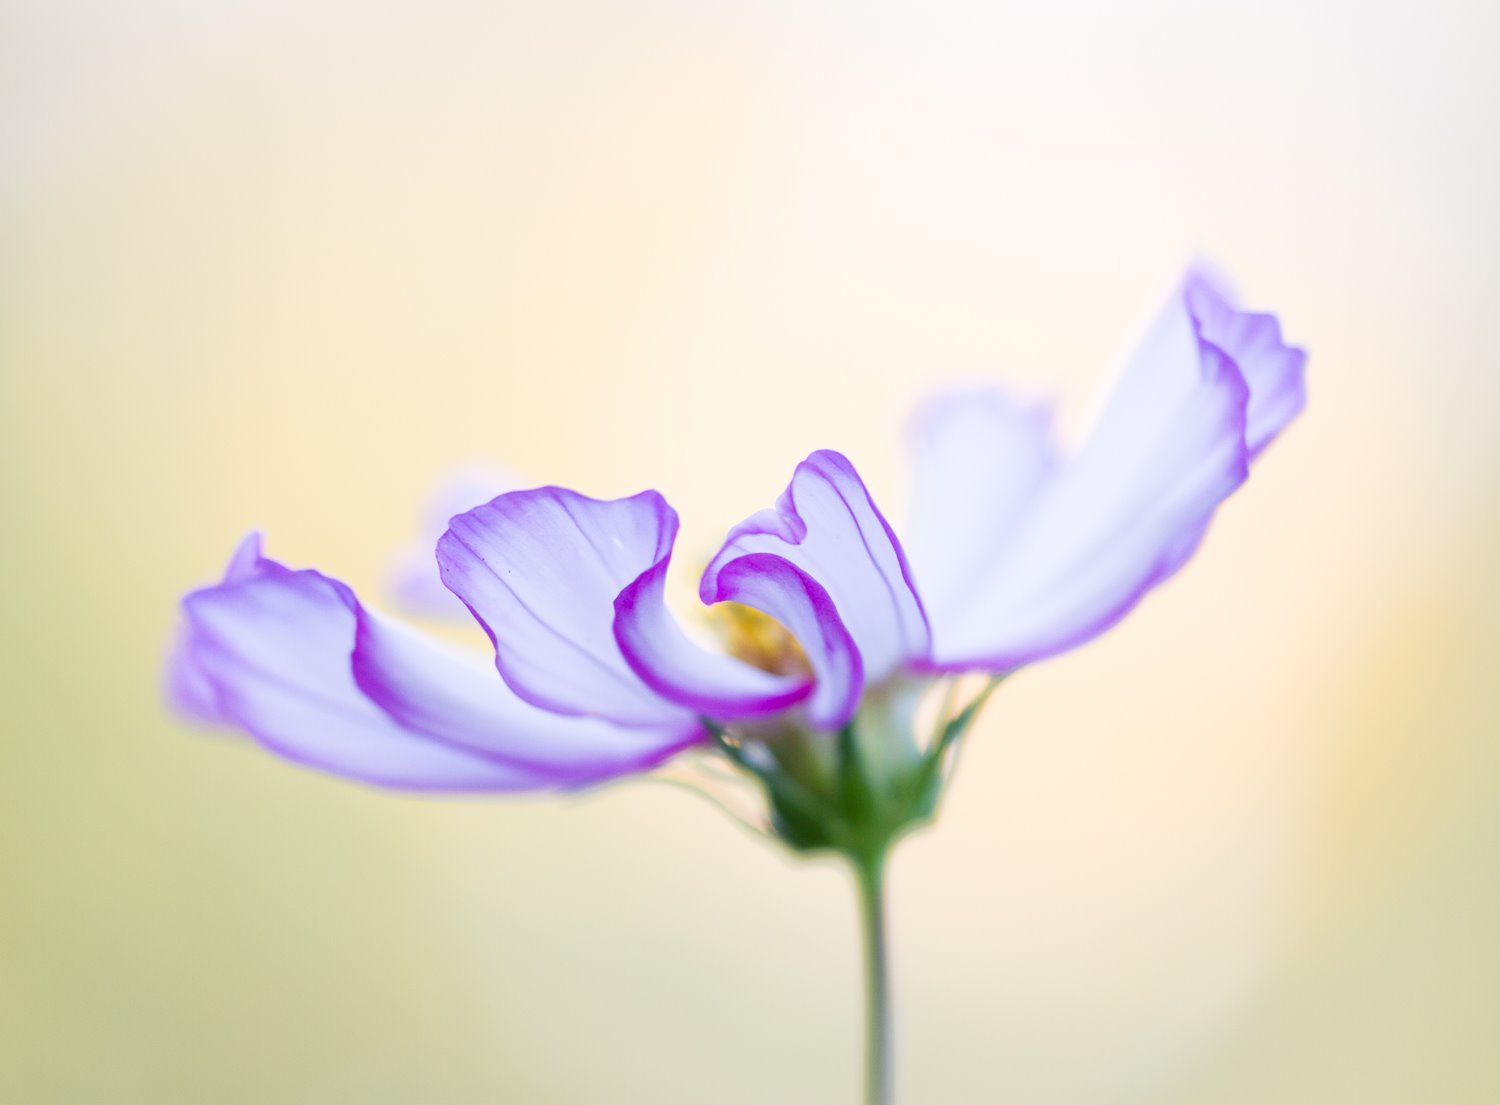 flower with a shallow depth of field effect